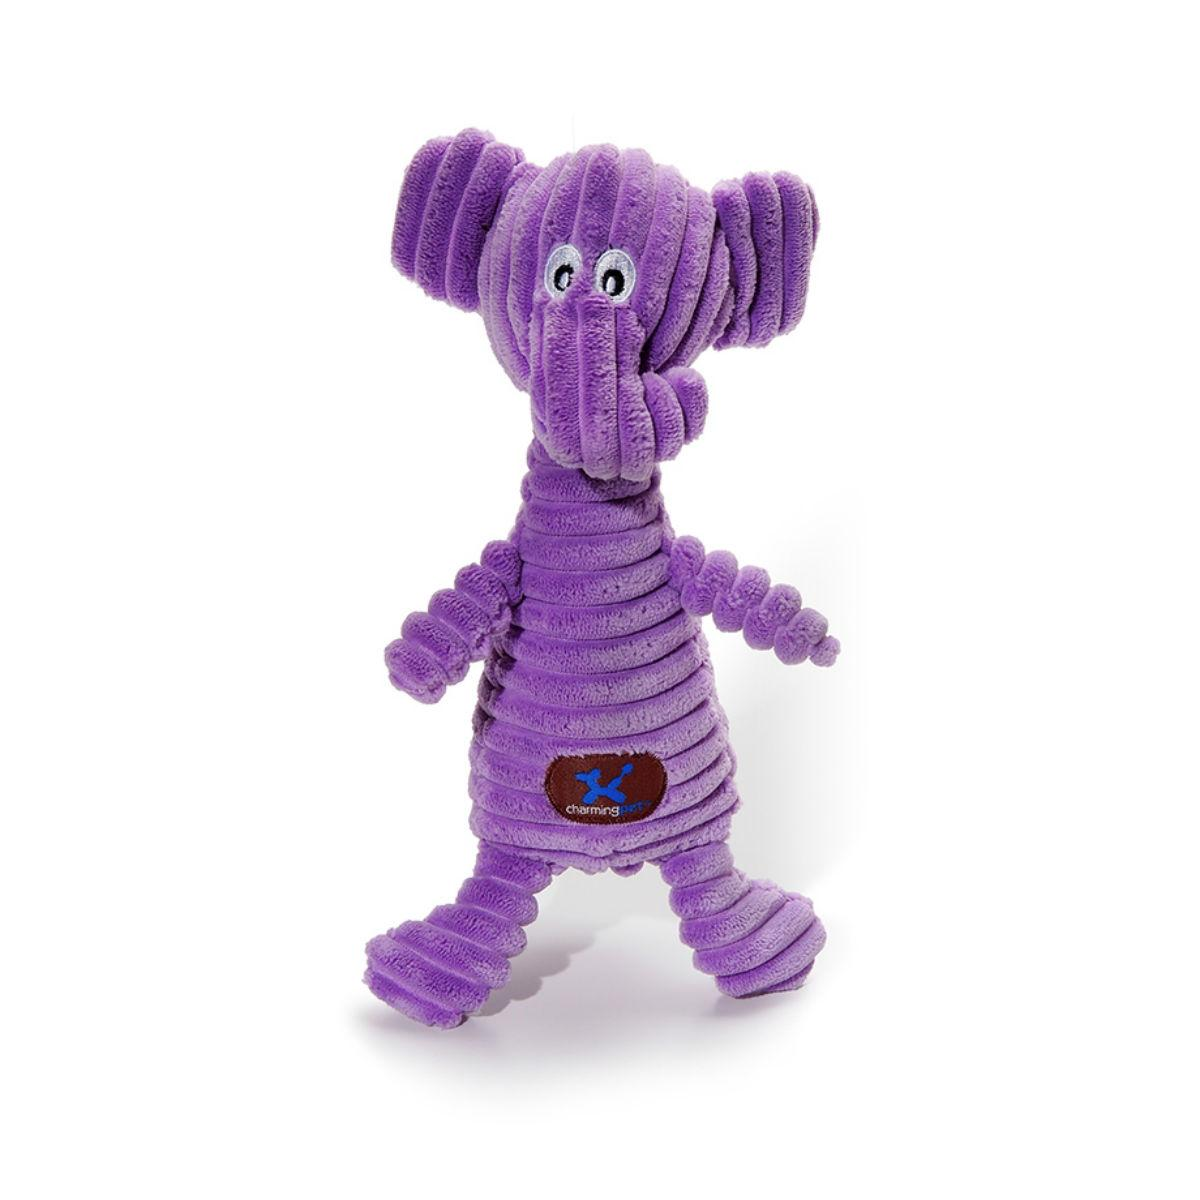 Charming Squeakin' Squiggles Dog Toy - Elephant